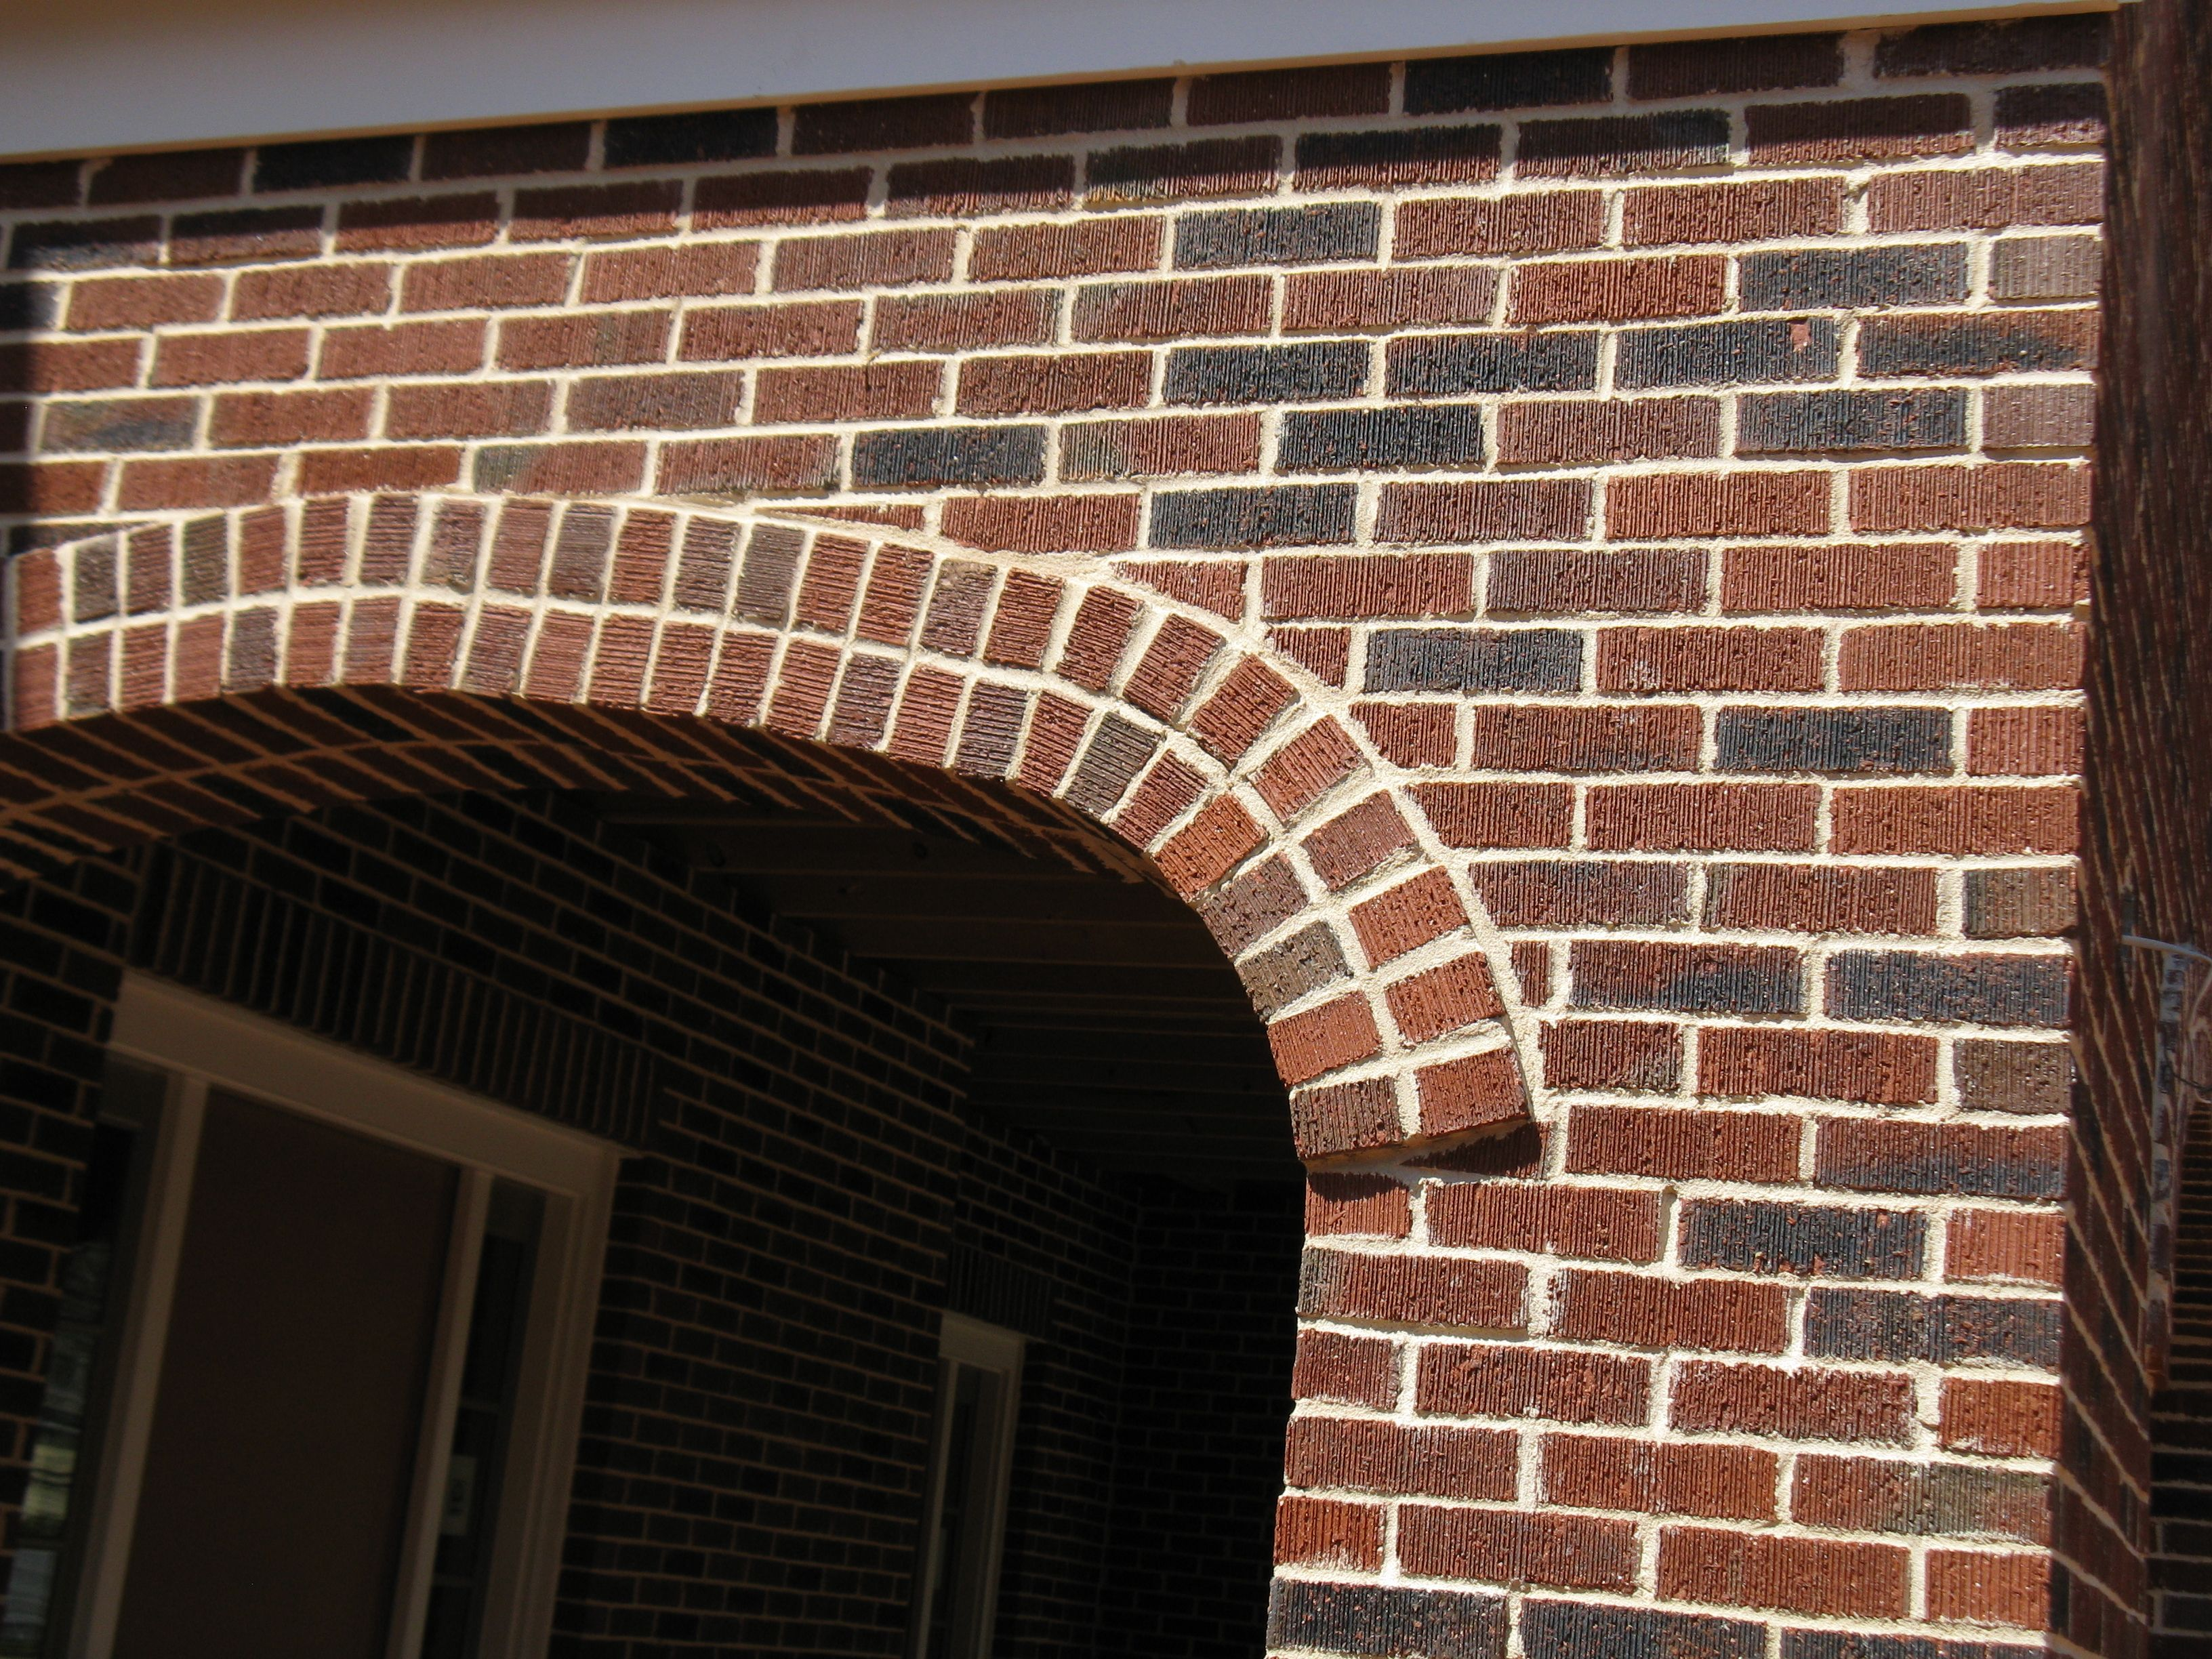 Decorative arches bring light and air into a structure. This ...